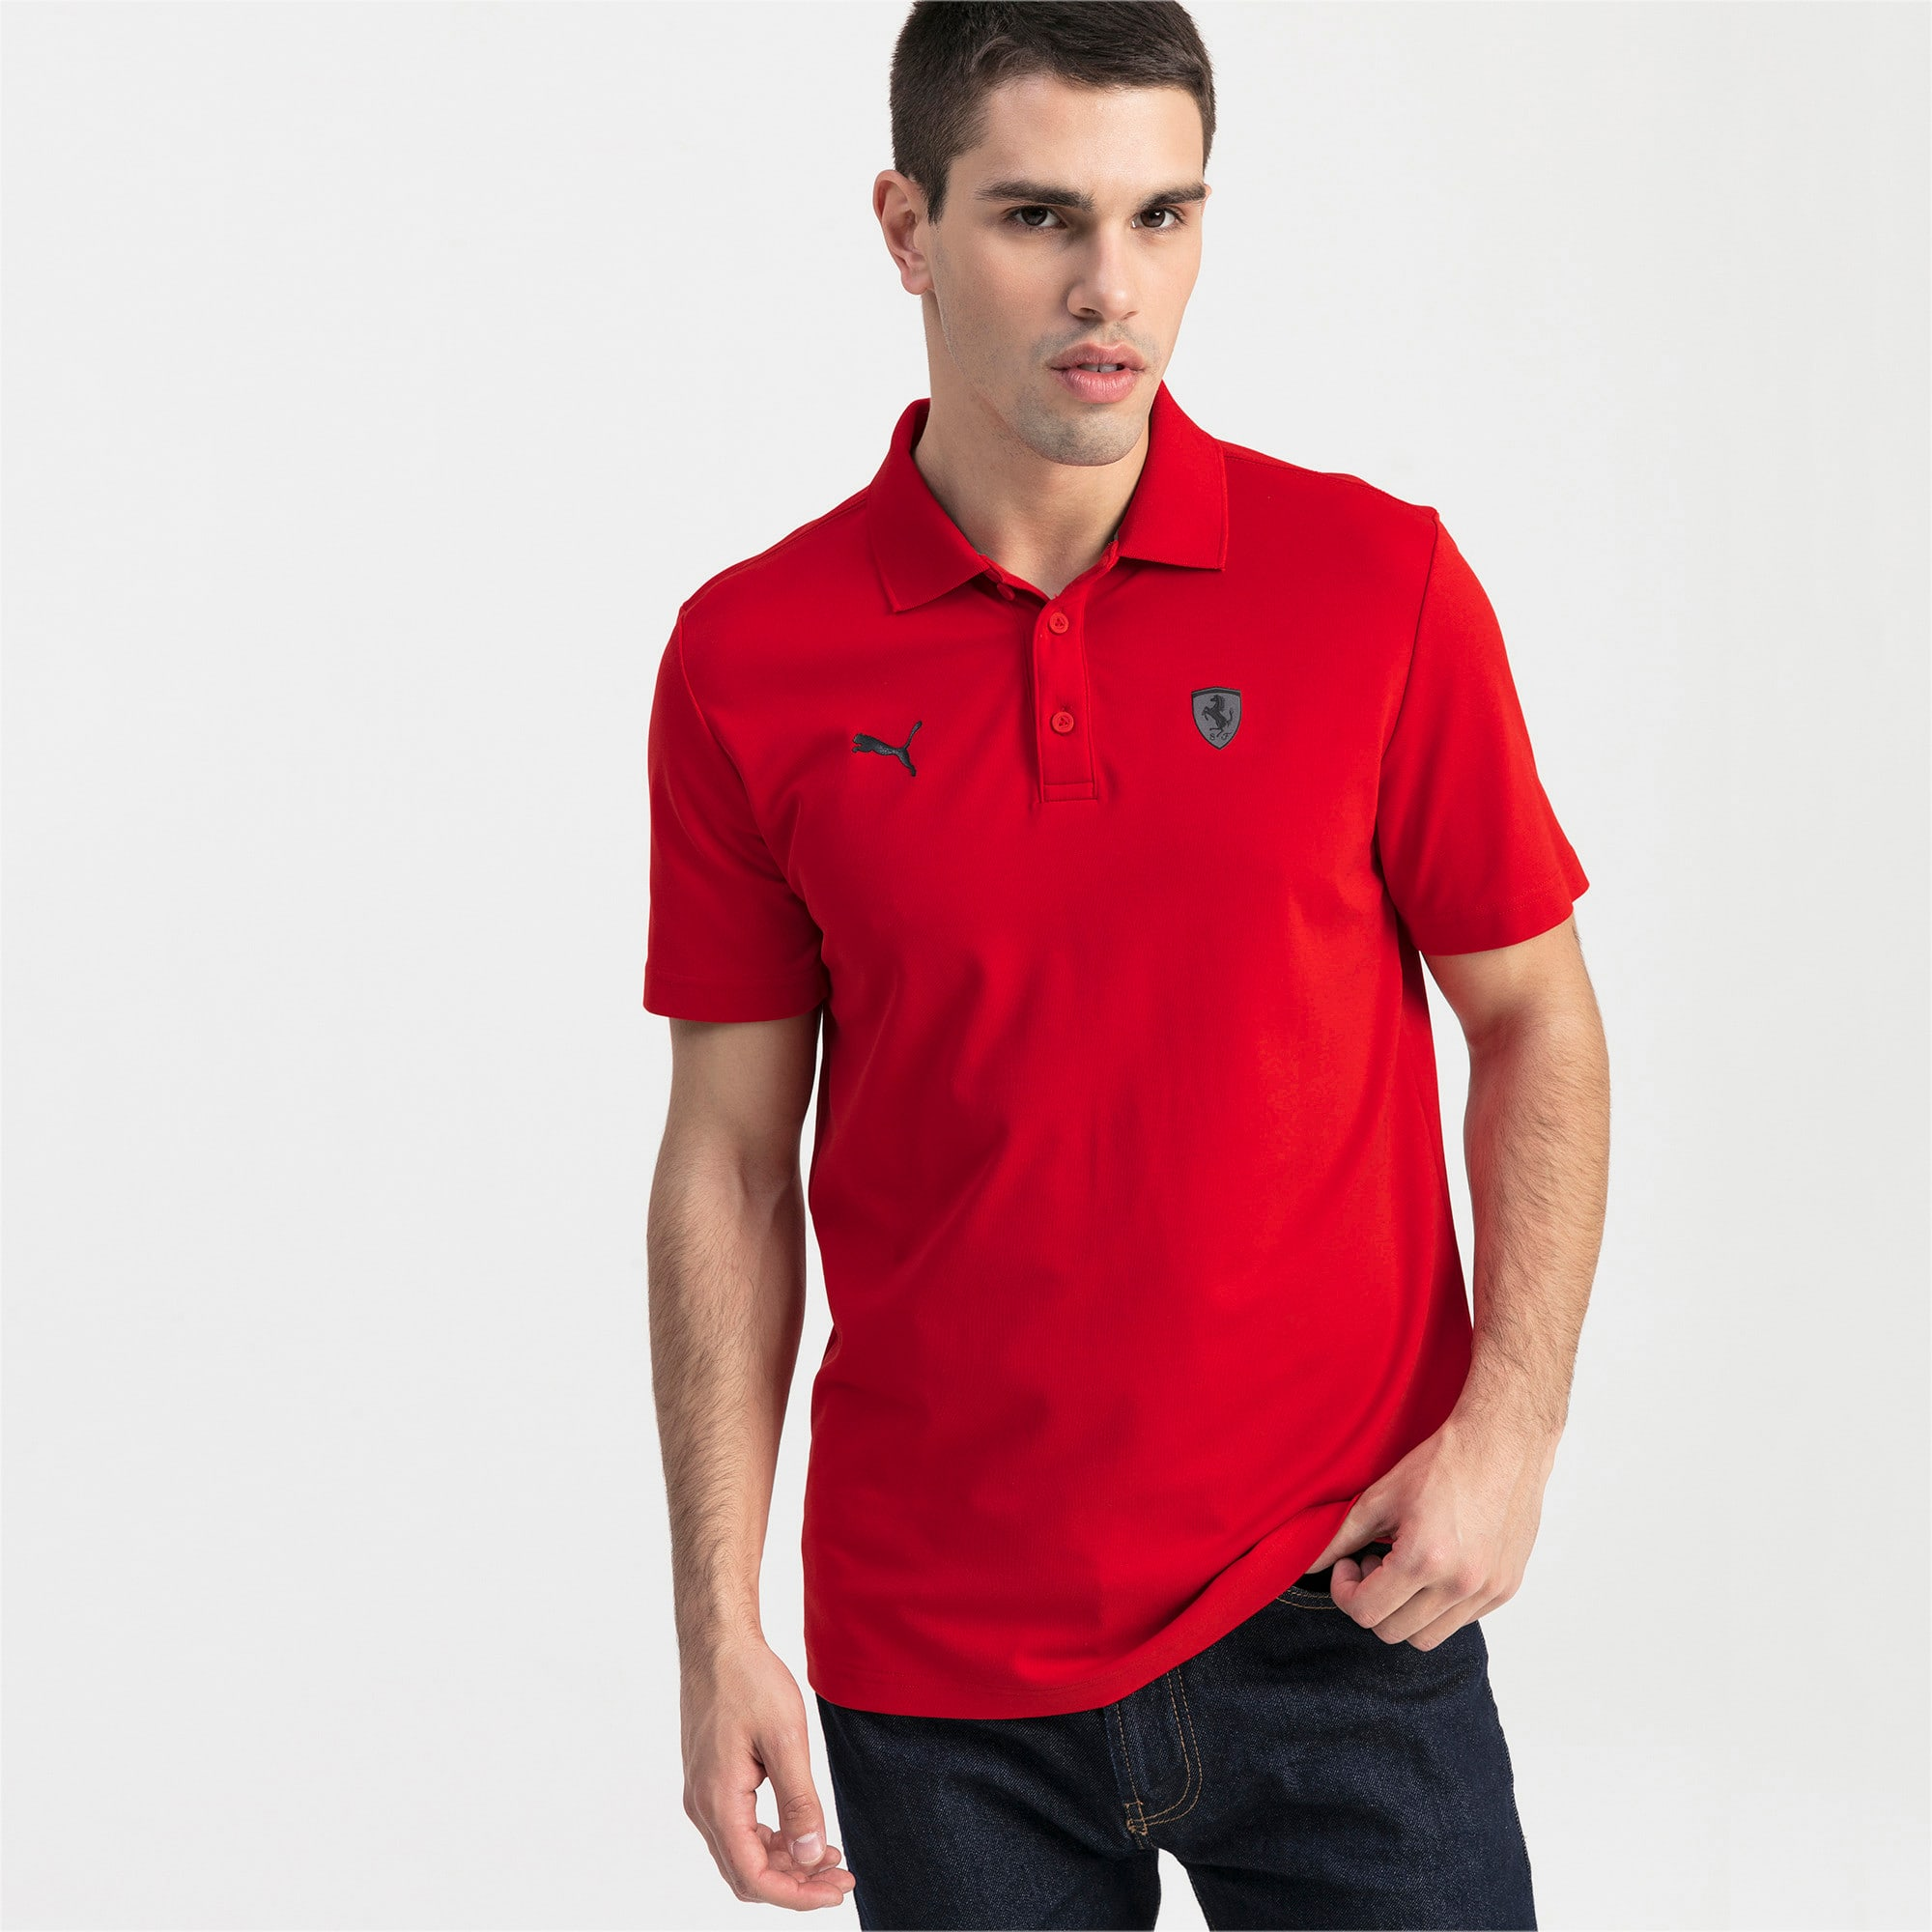 Thumbnail 1 of Ferrari Men's Polo Shirt, Rosso Corsa, medium